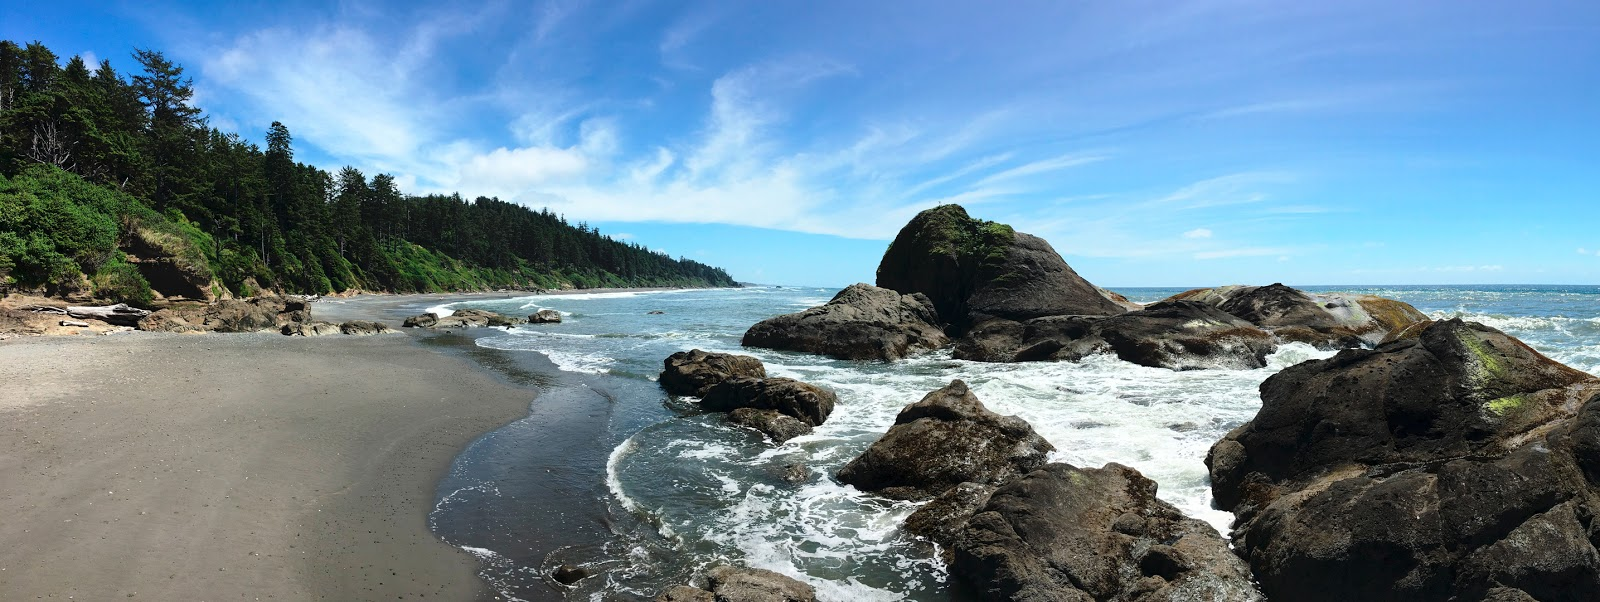 Ruby Beach on Washington's Pacific Coast